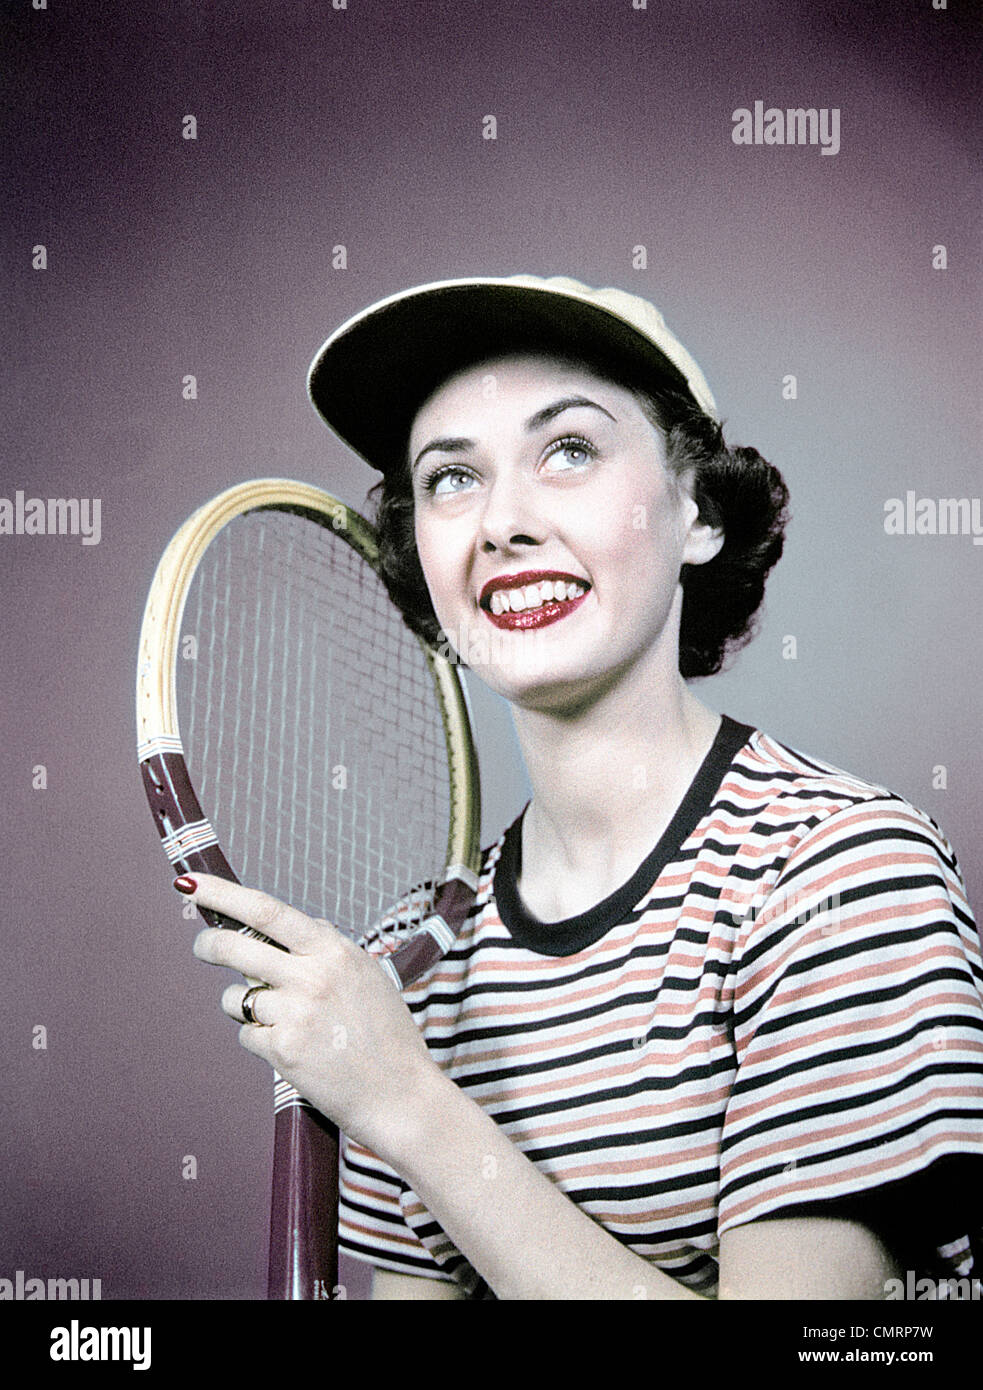 1950 SMILING BRUNETTE WOMAN HOLDING TENNIS RACKET PORTER LA CHEMISE rayée Photo Stock